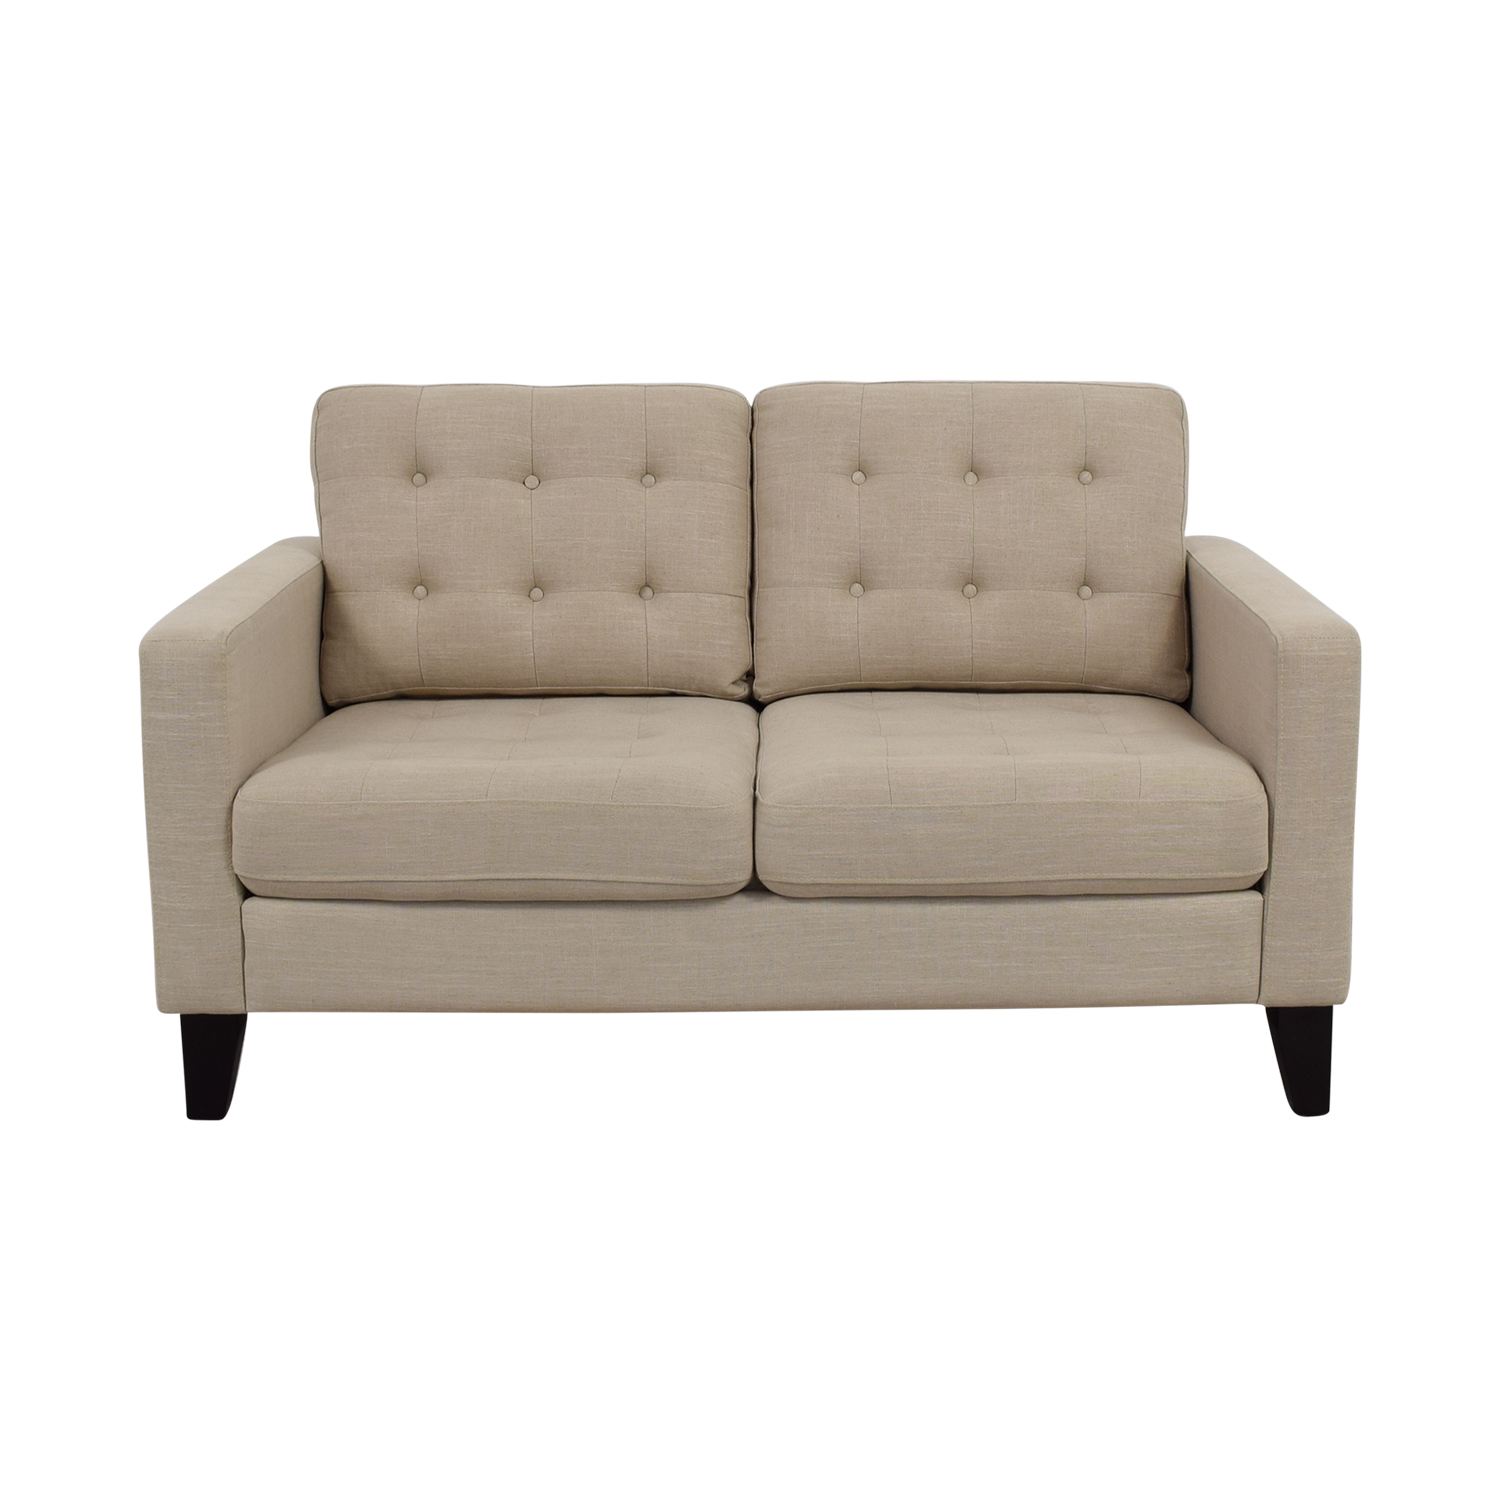 furniture loveseat container trim wayfair linen pdx nailhead chesterfield tufted reviews